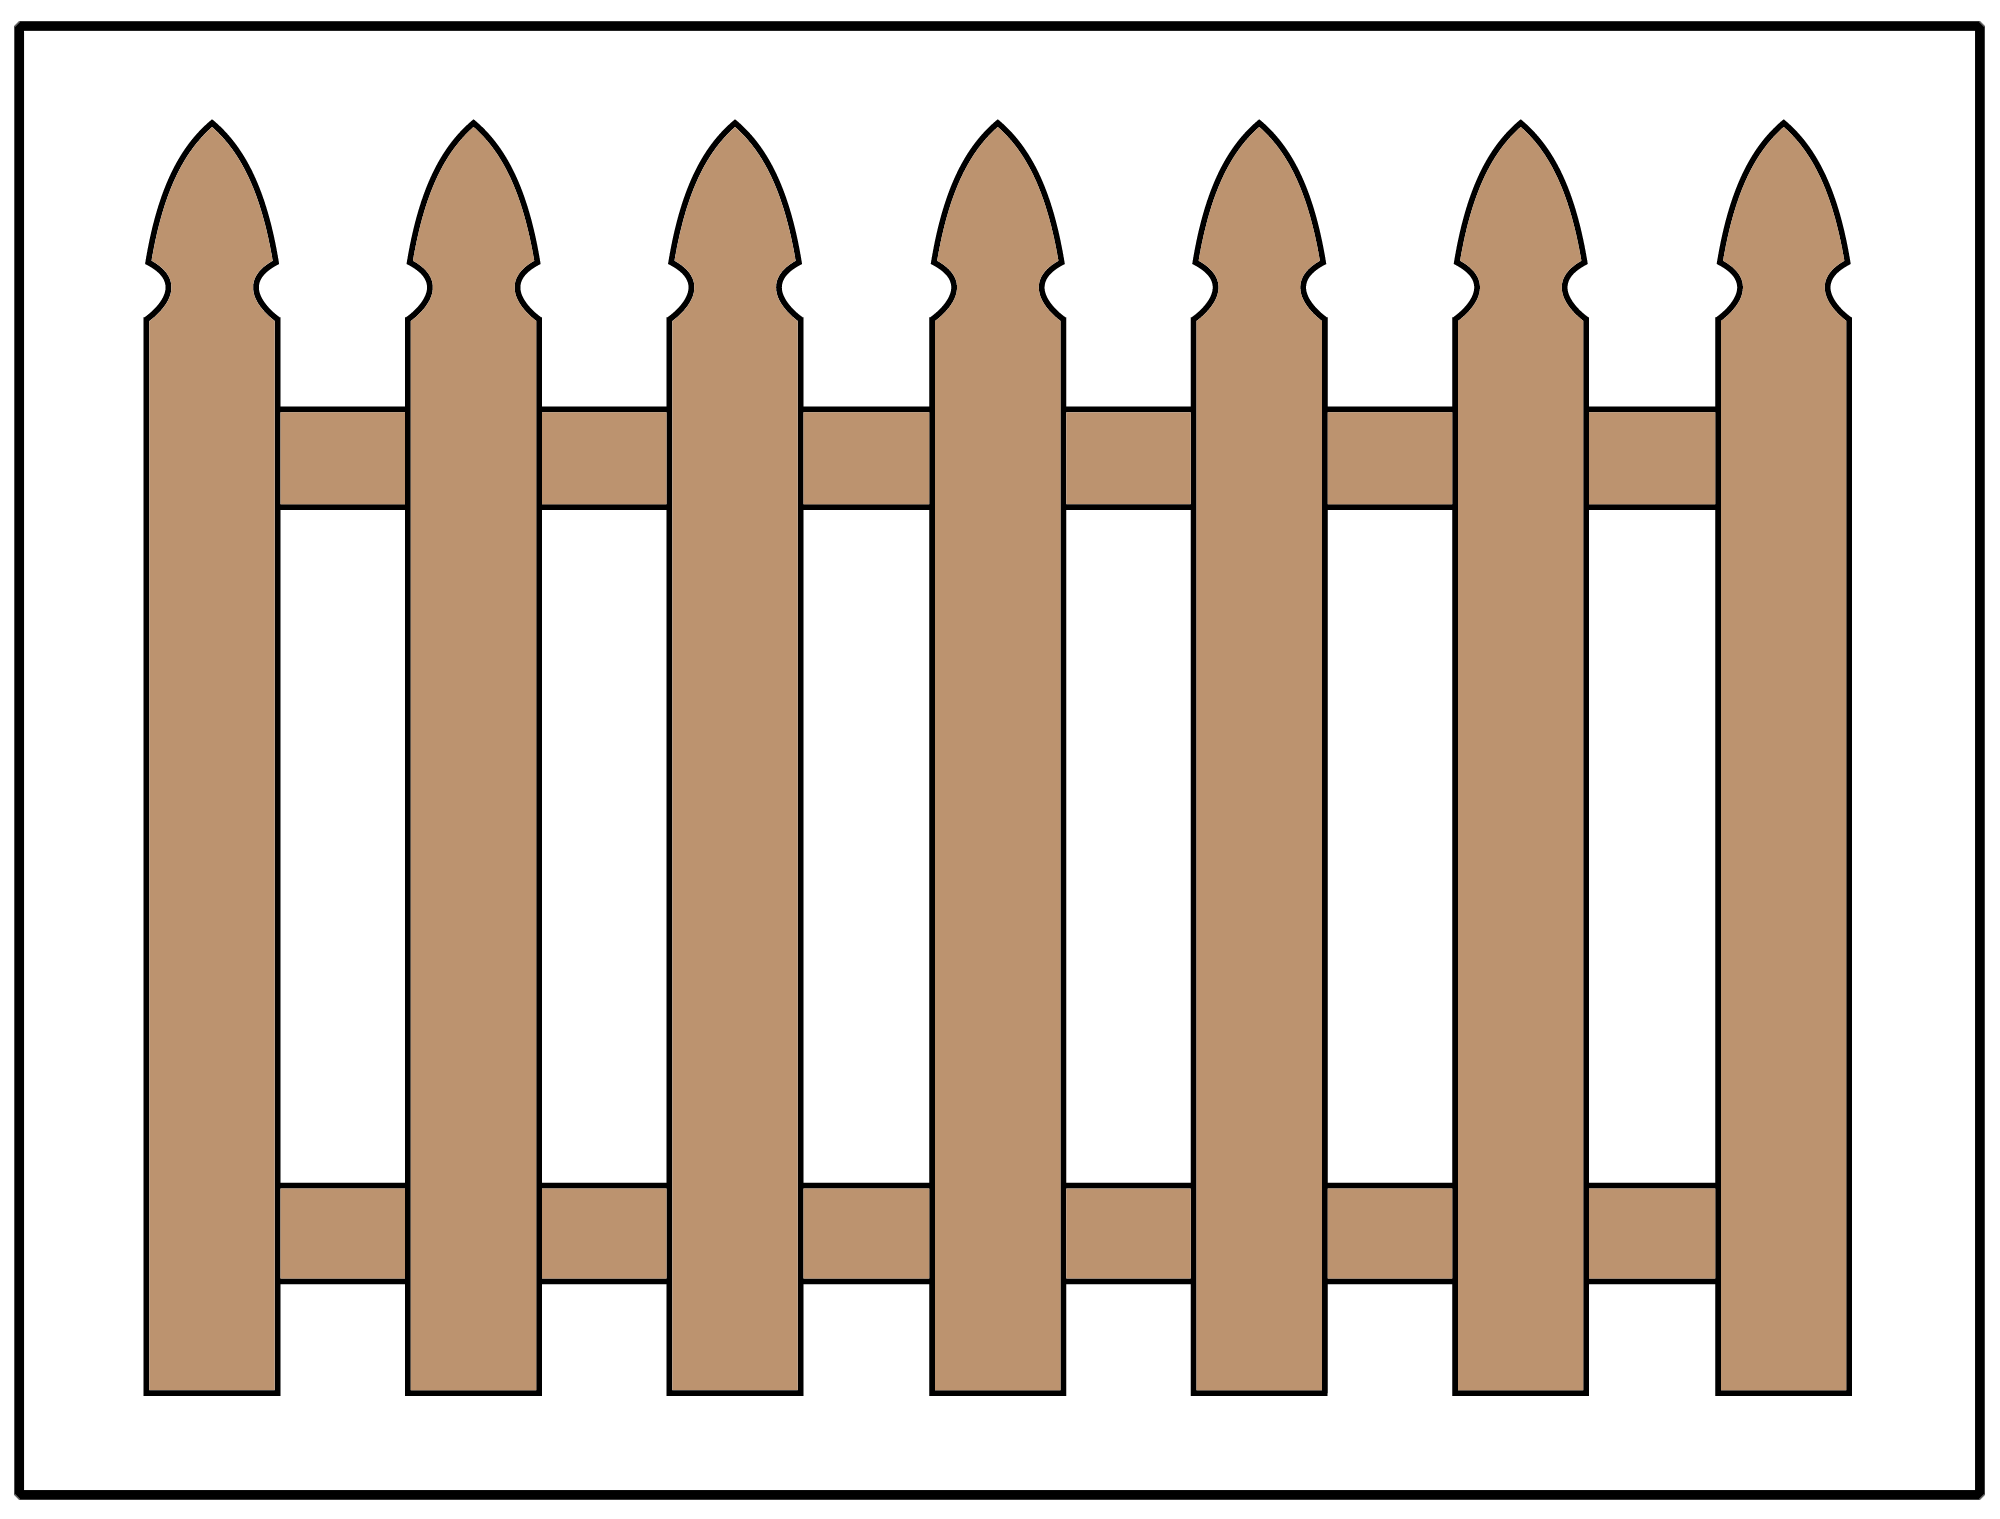 Picket fence design using gothic pickets